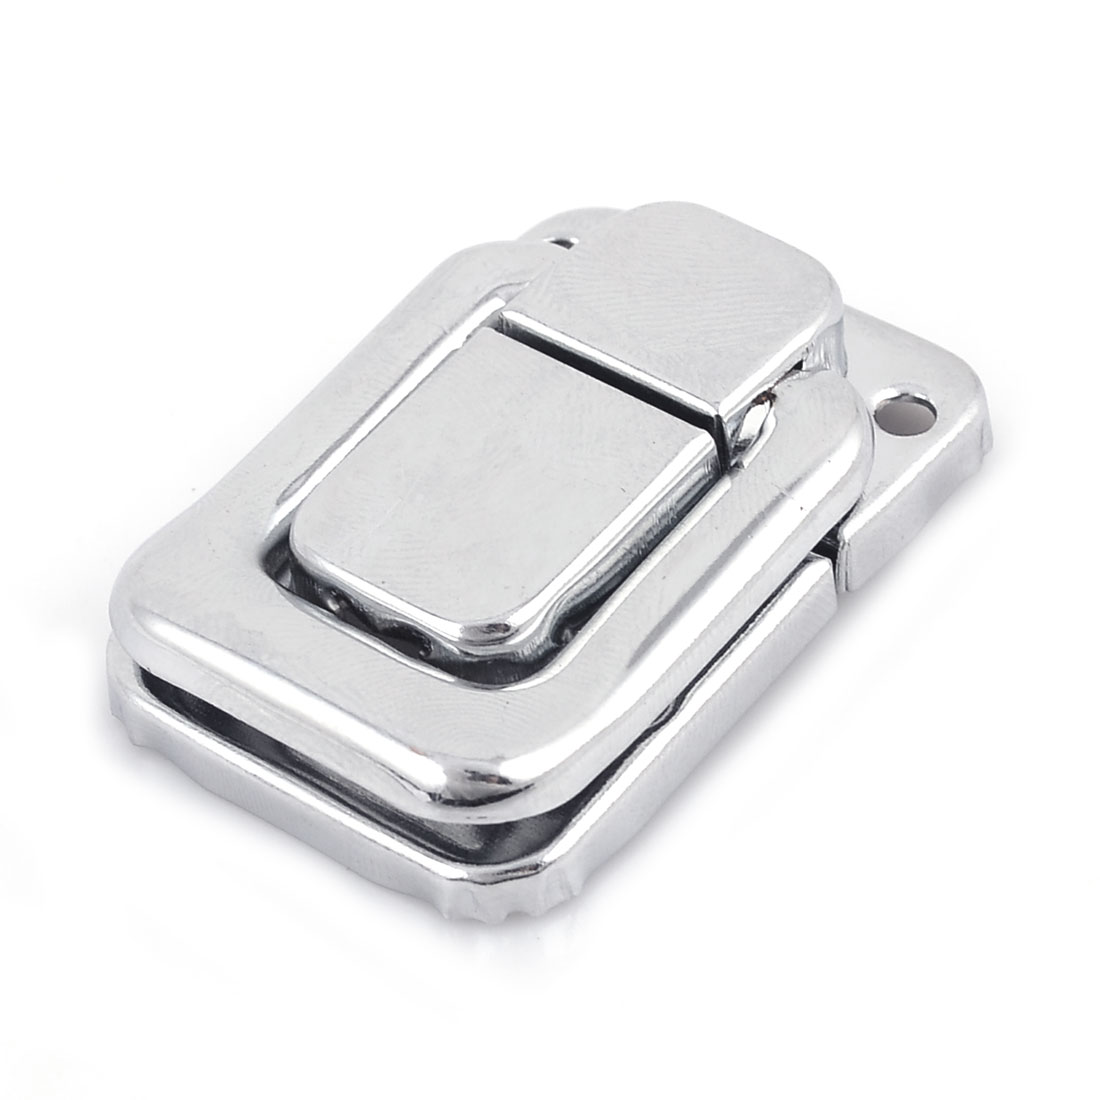 Home Household Hardware Case Part Lock Buckle for Suitcase